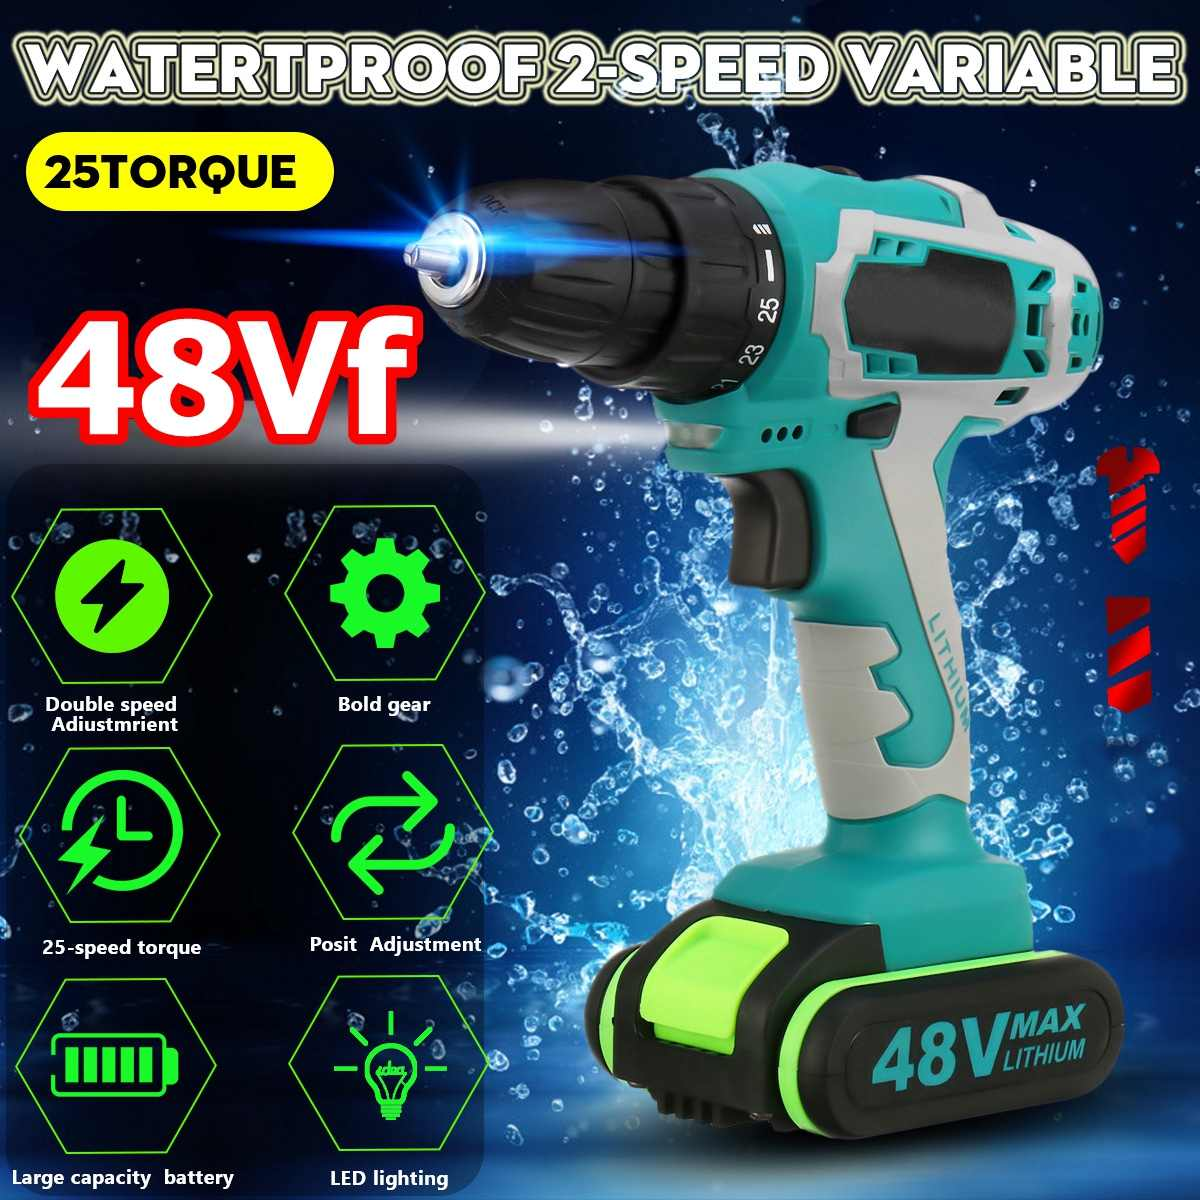 48V 5000mAh 2528Nm 25-speed Torque Double Speed Brushless Cordless Electric Drill Screwdriver Hammer LED Lighting